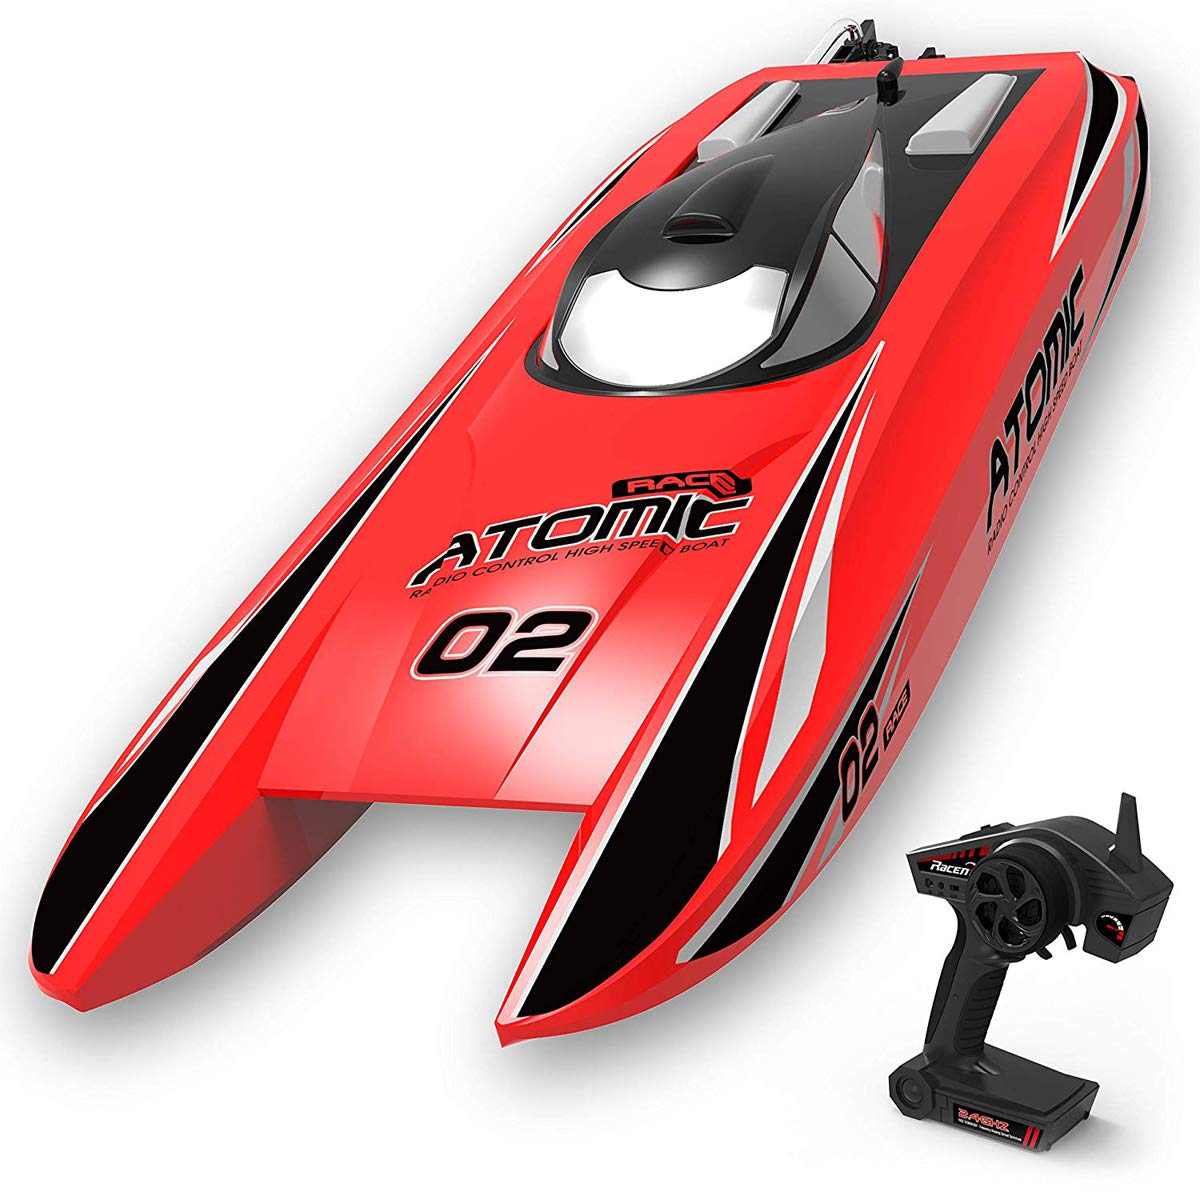 VOLANTEXRC Brushless RC Boat 40mph High Speed Remote Control Ship Atomic 28inch Unibody Hull, Improved Waterproof Design in Lakes, Rivers for Adults, Boys or Girls (792-4 RTR Red)